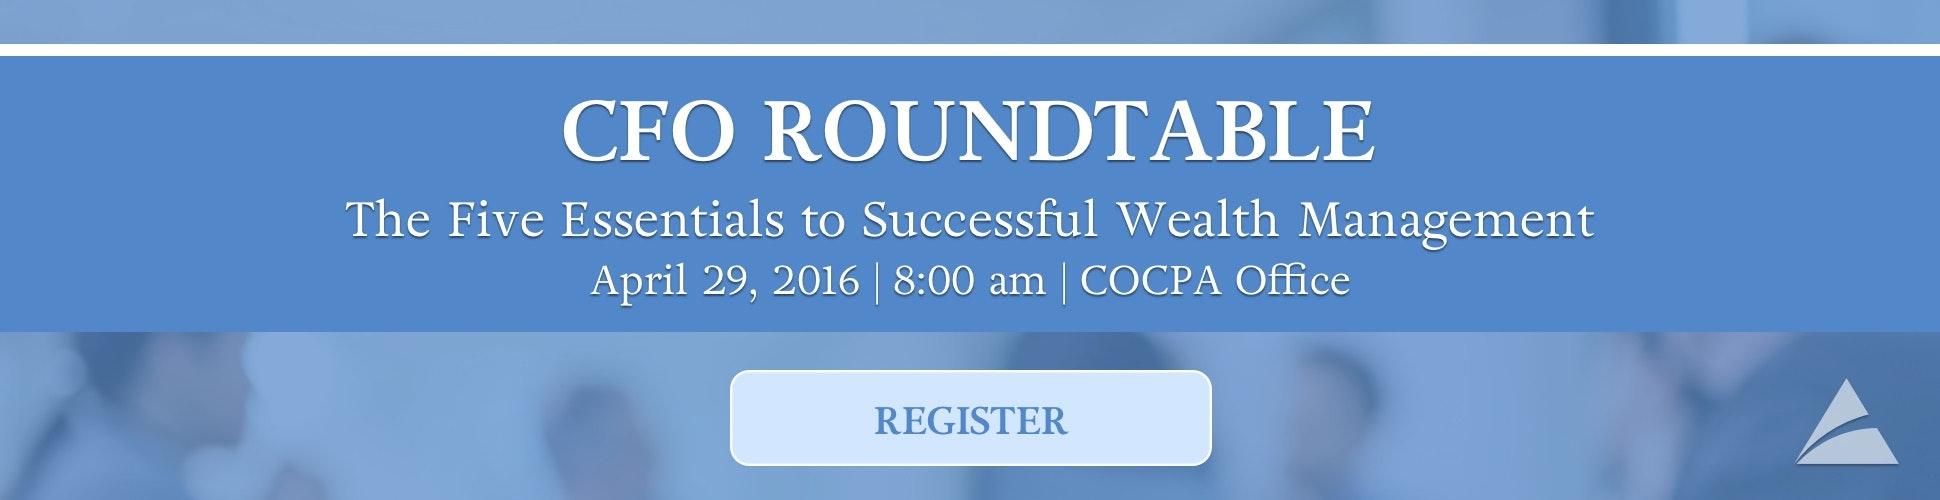 Join Your Colleagues at the April CFO Roundtable